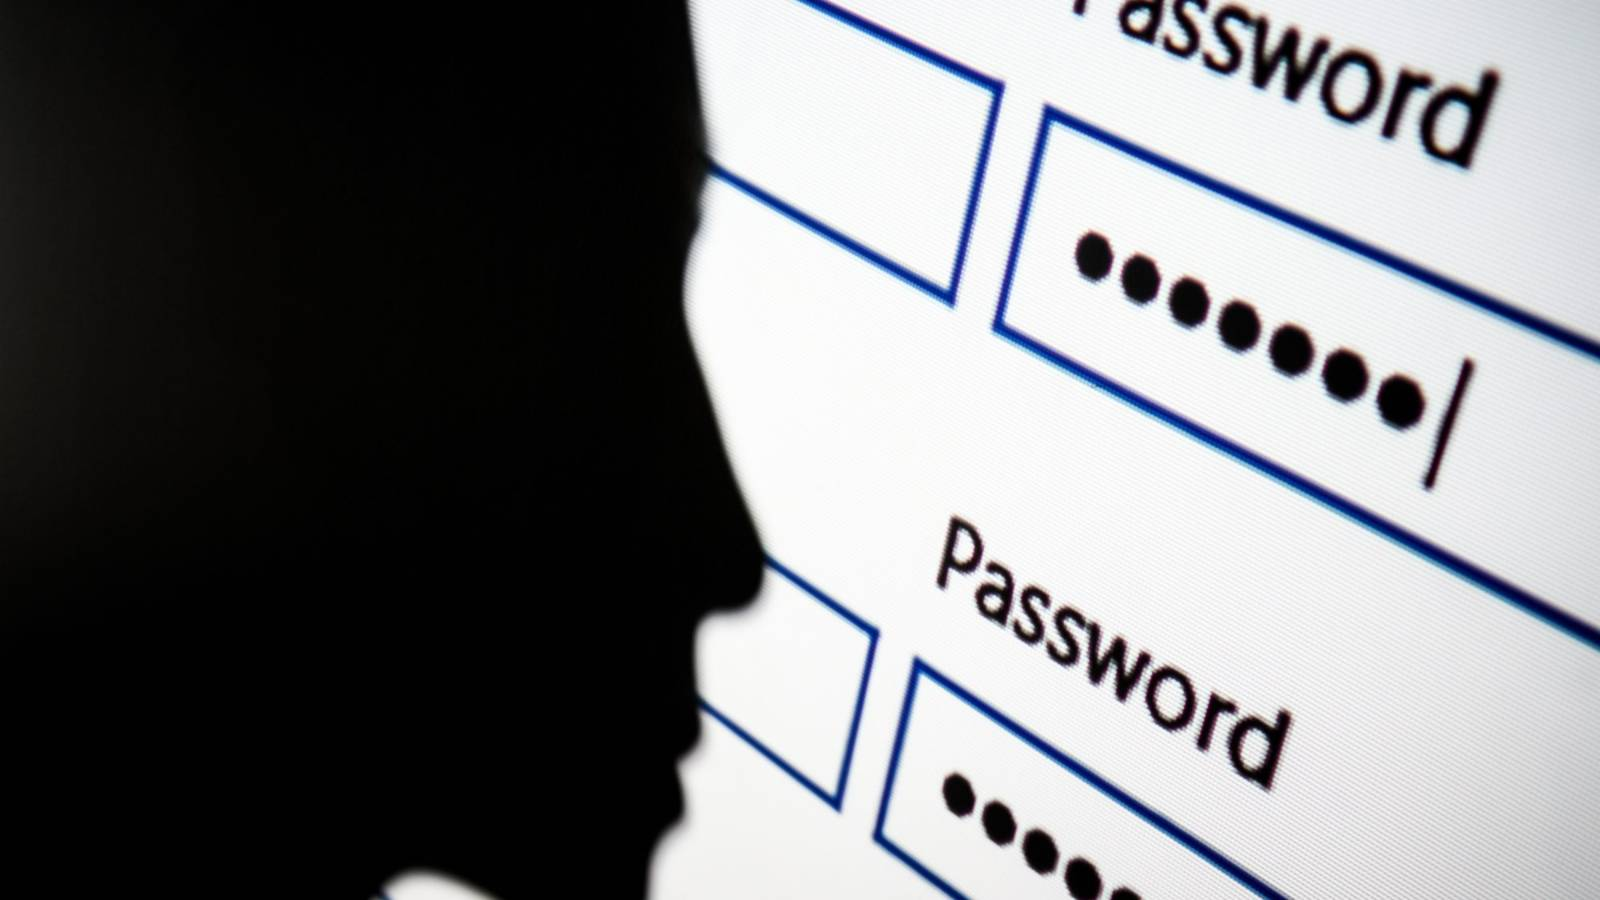 A computer can guess billions of passwords per second. Is yours safe?